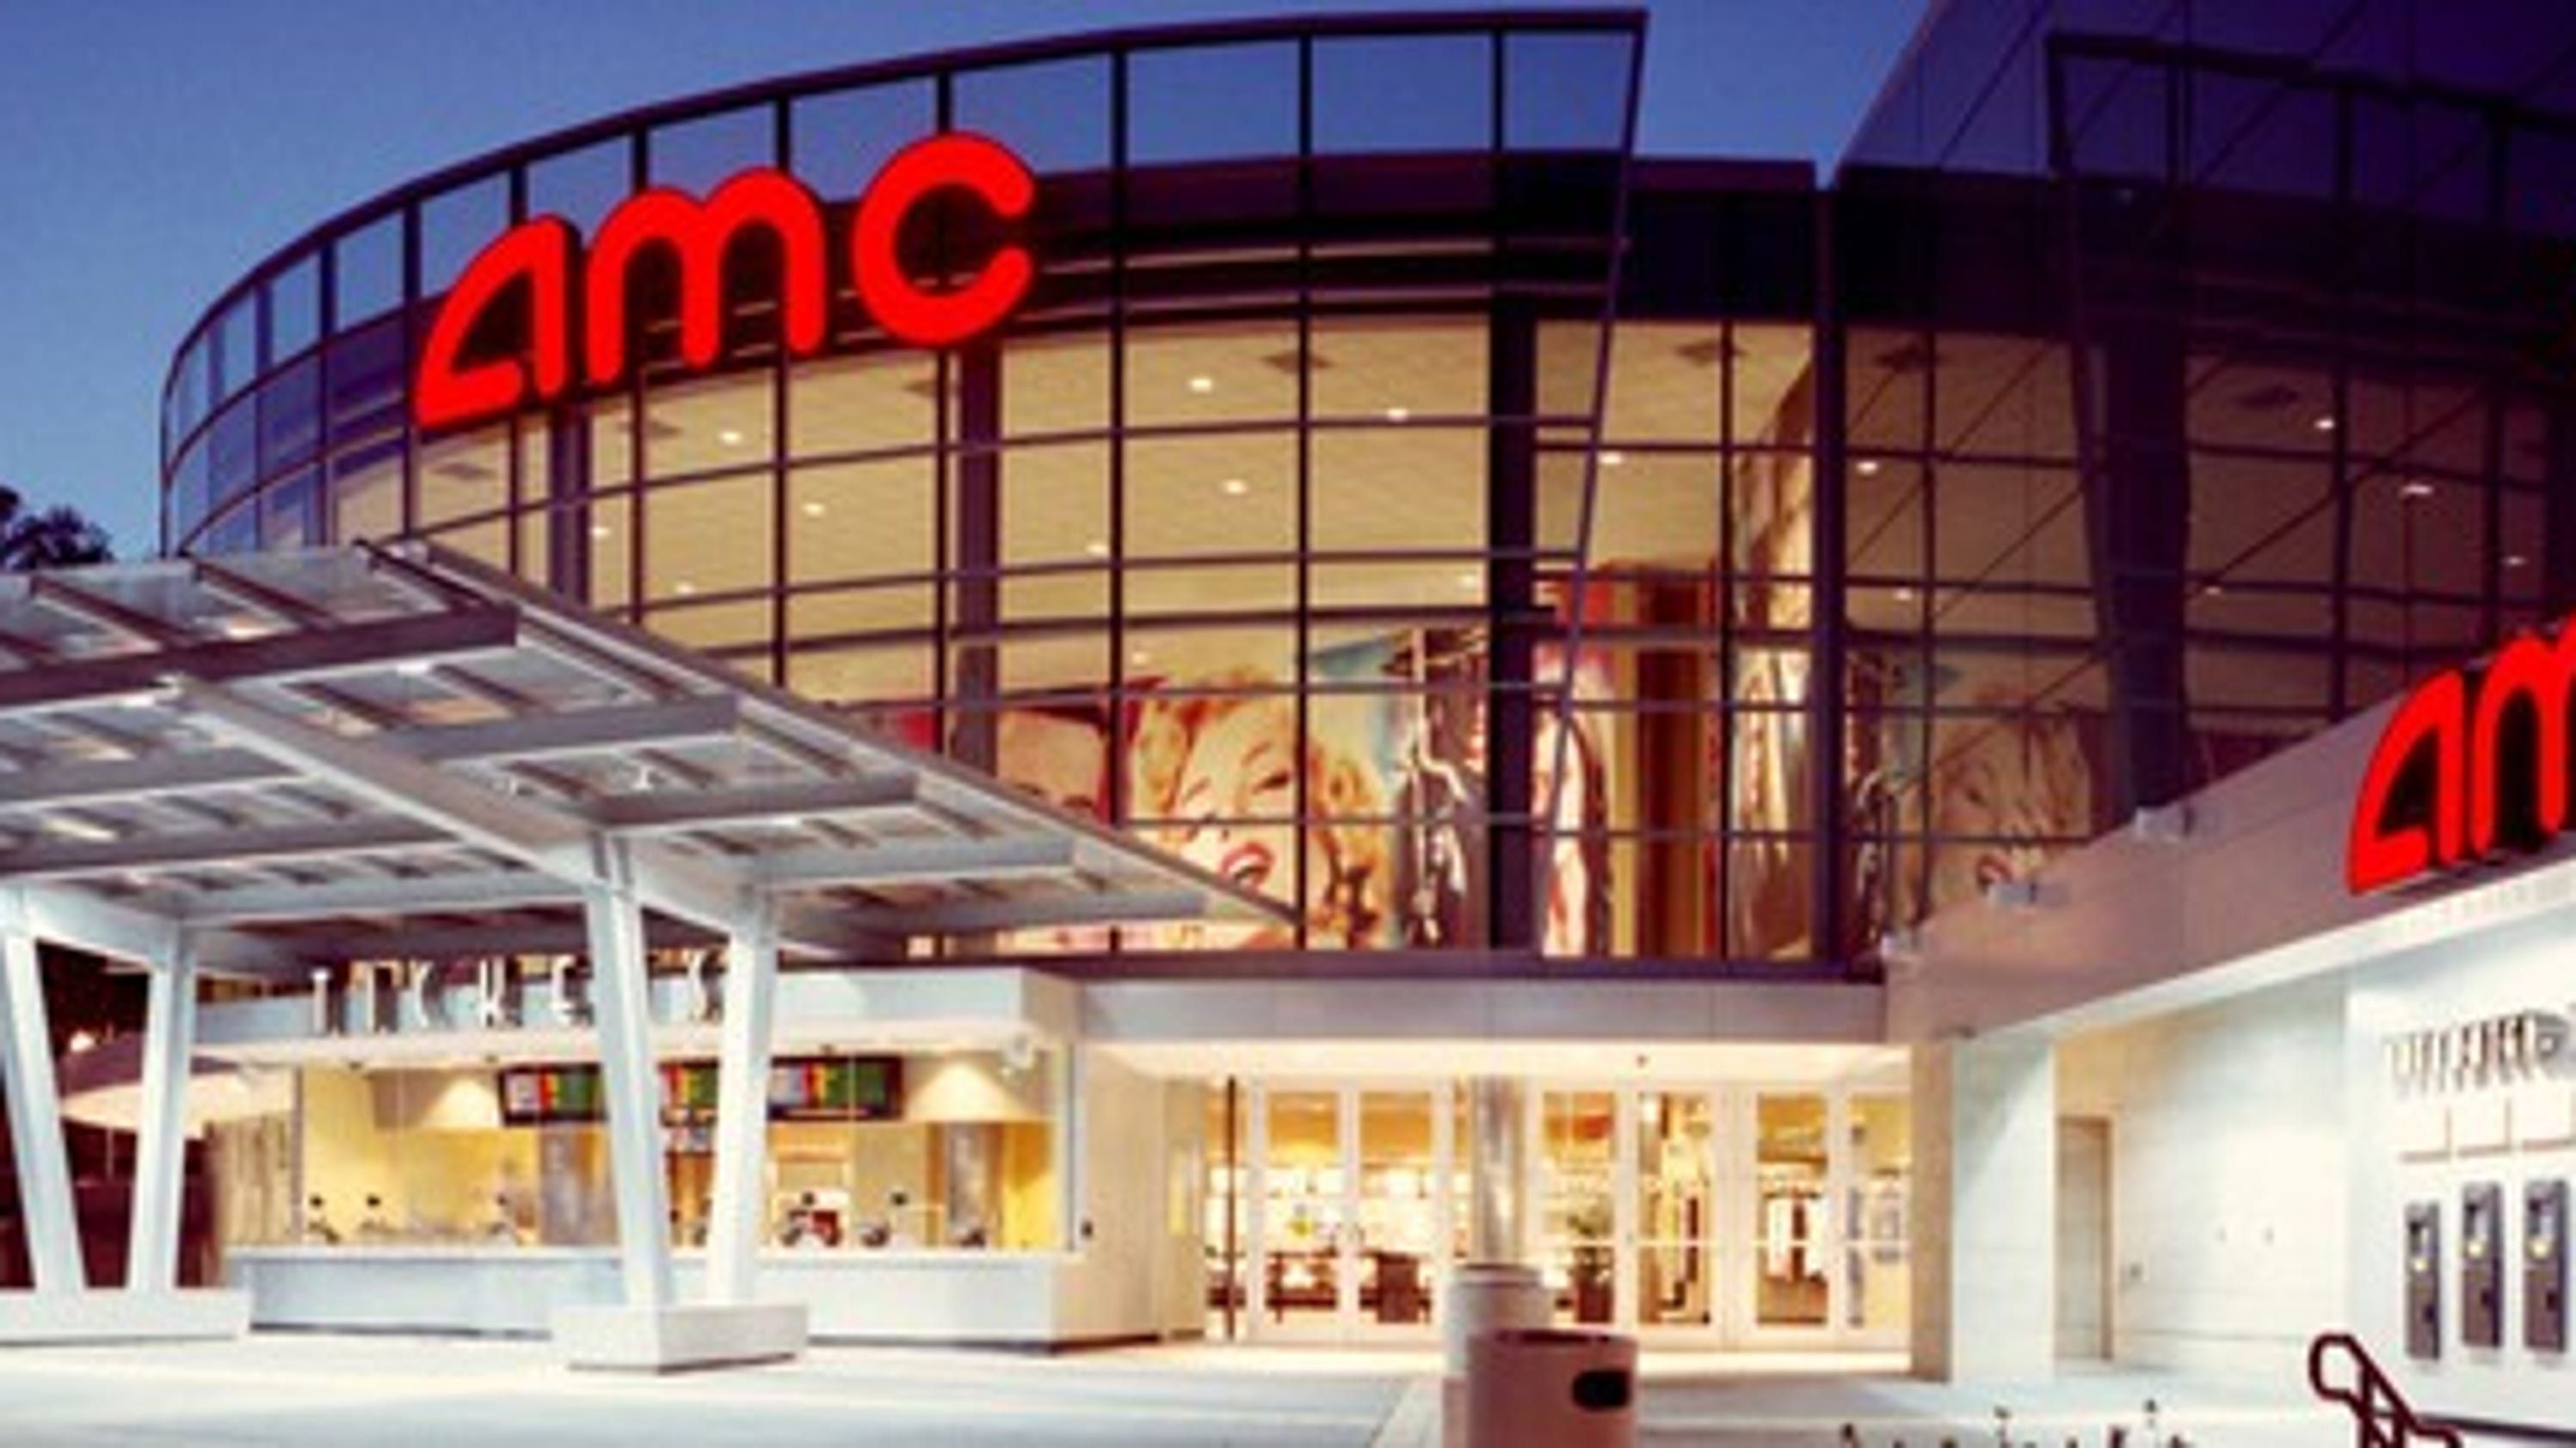 Movie lovers who register to become AMC Stubs Premiere members at AMC Theatres are enjoying reduced prices on in-store purchases of tickets to see blockbuster hits. Check out popular films like Creed 2 and The Grinch.